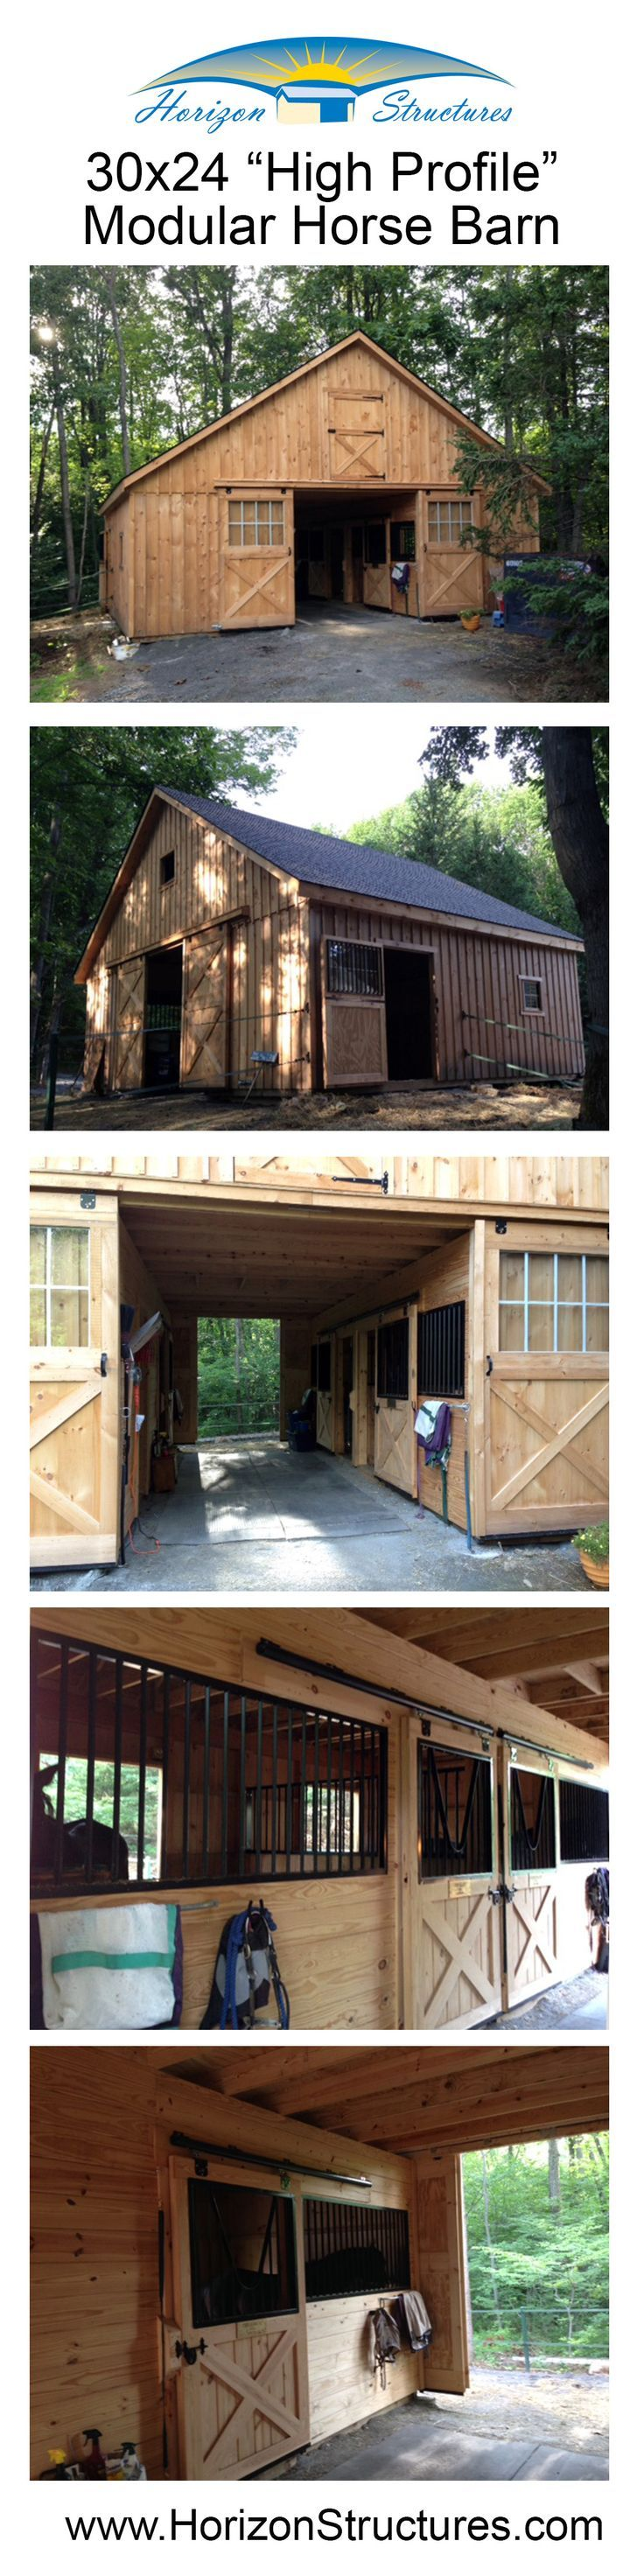 """30x24 """"high profile"""" modular barn. Includes 3 - 10x12 stalls, 10x12 tack/feed room and a full loft. The stall windows were upgraded to Dutch-style doors to allow the horses access to turnout without having to go through the barn. Delivered in 2 pre-built halves, our crew adds the roof on-site. Ready for your horses in 2-3 days."""